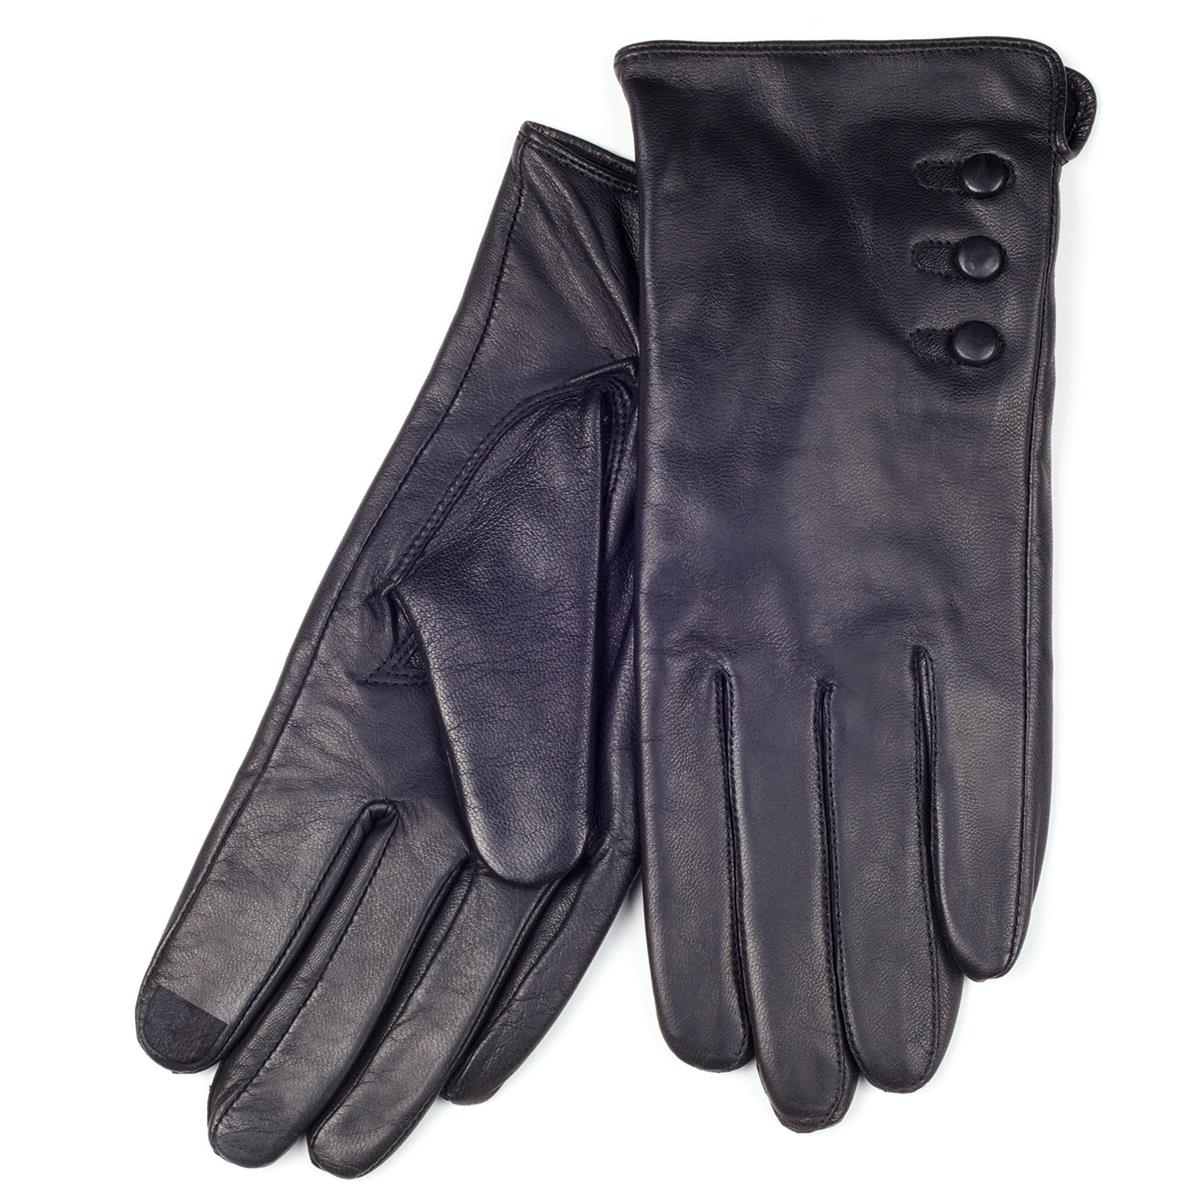 Ladies leather gloves isotoner - Isotoner 3 Button Detail Leather Smartouch Black